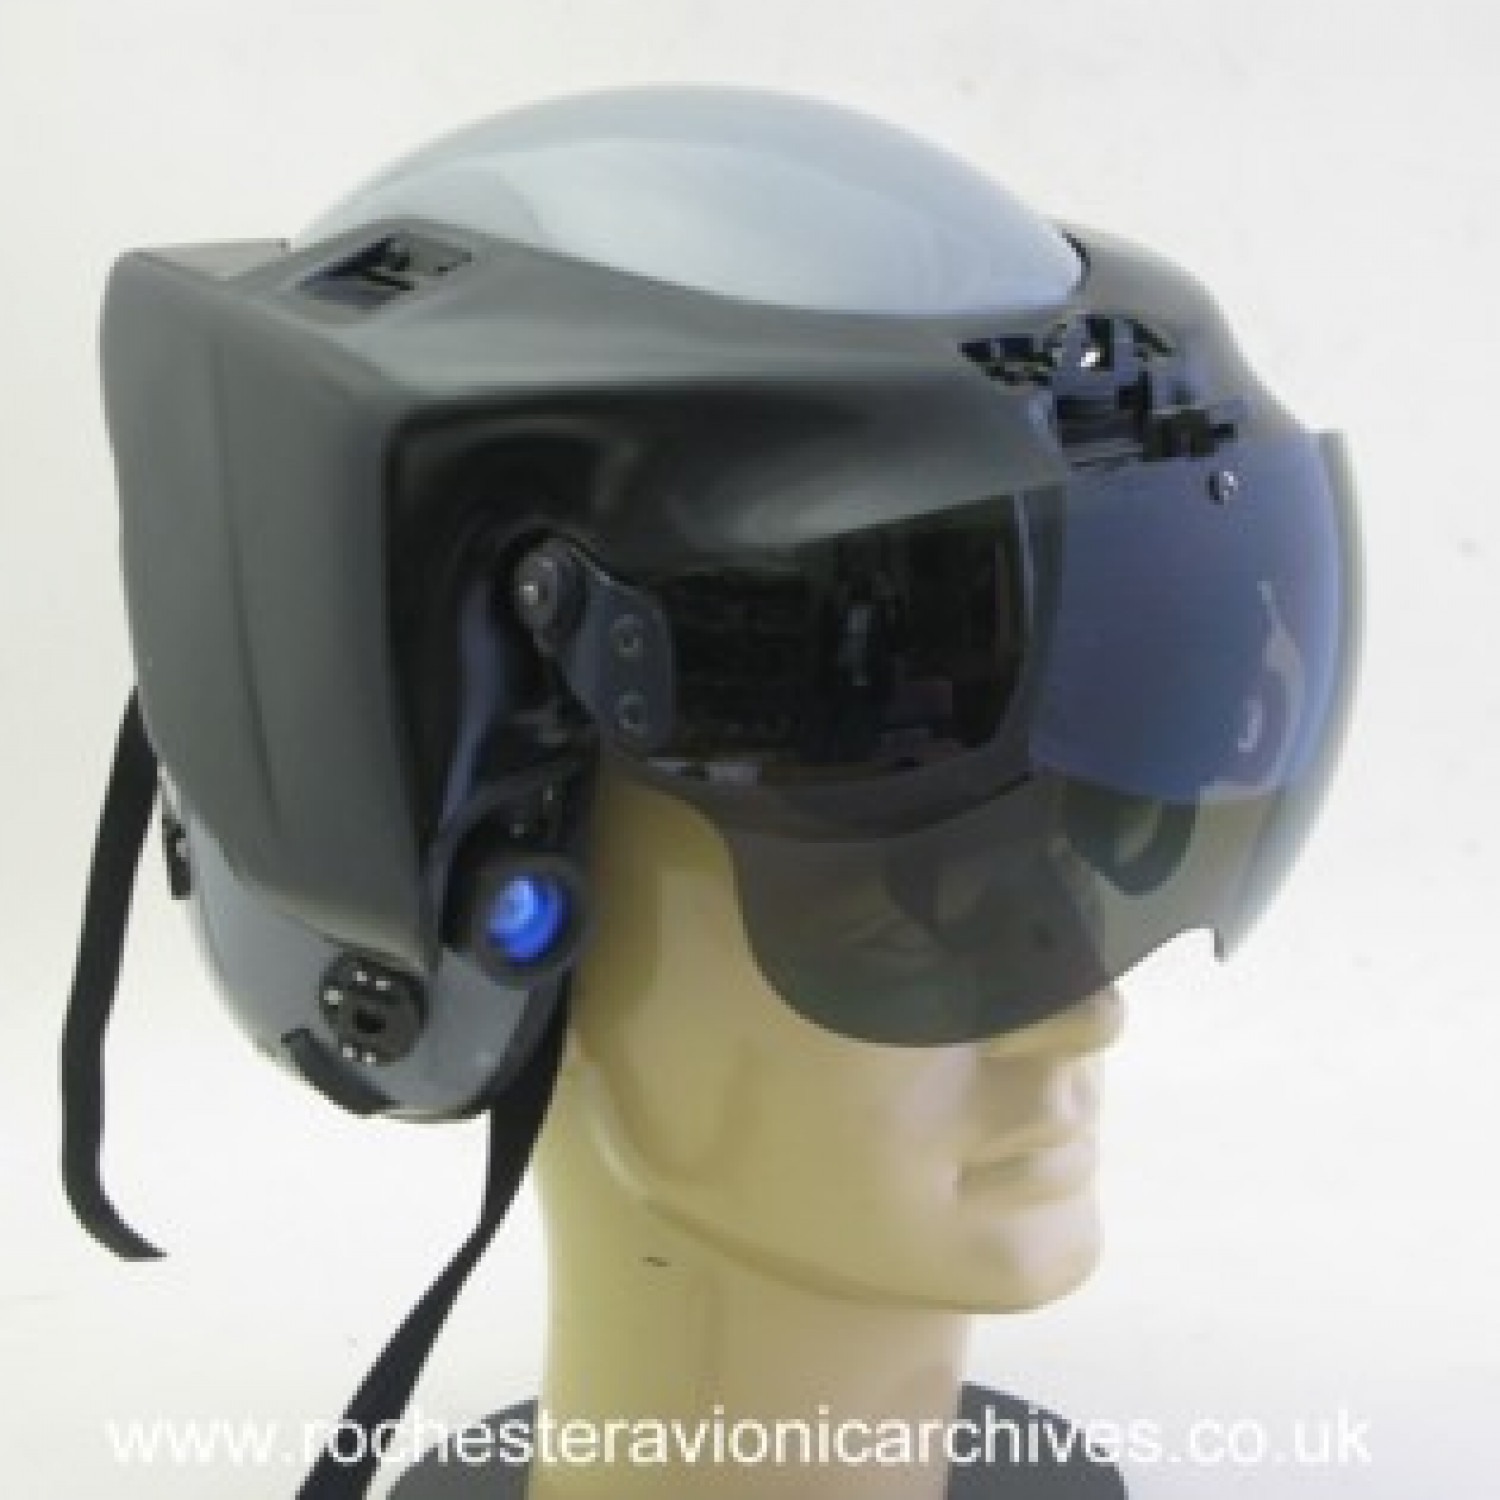 Tiger Prototype HMD